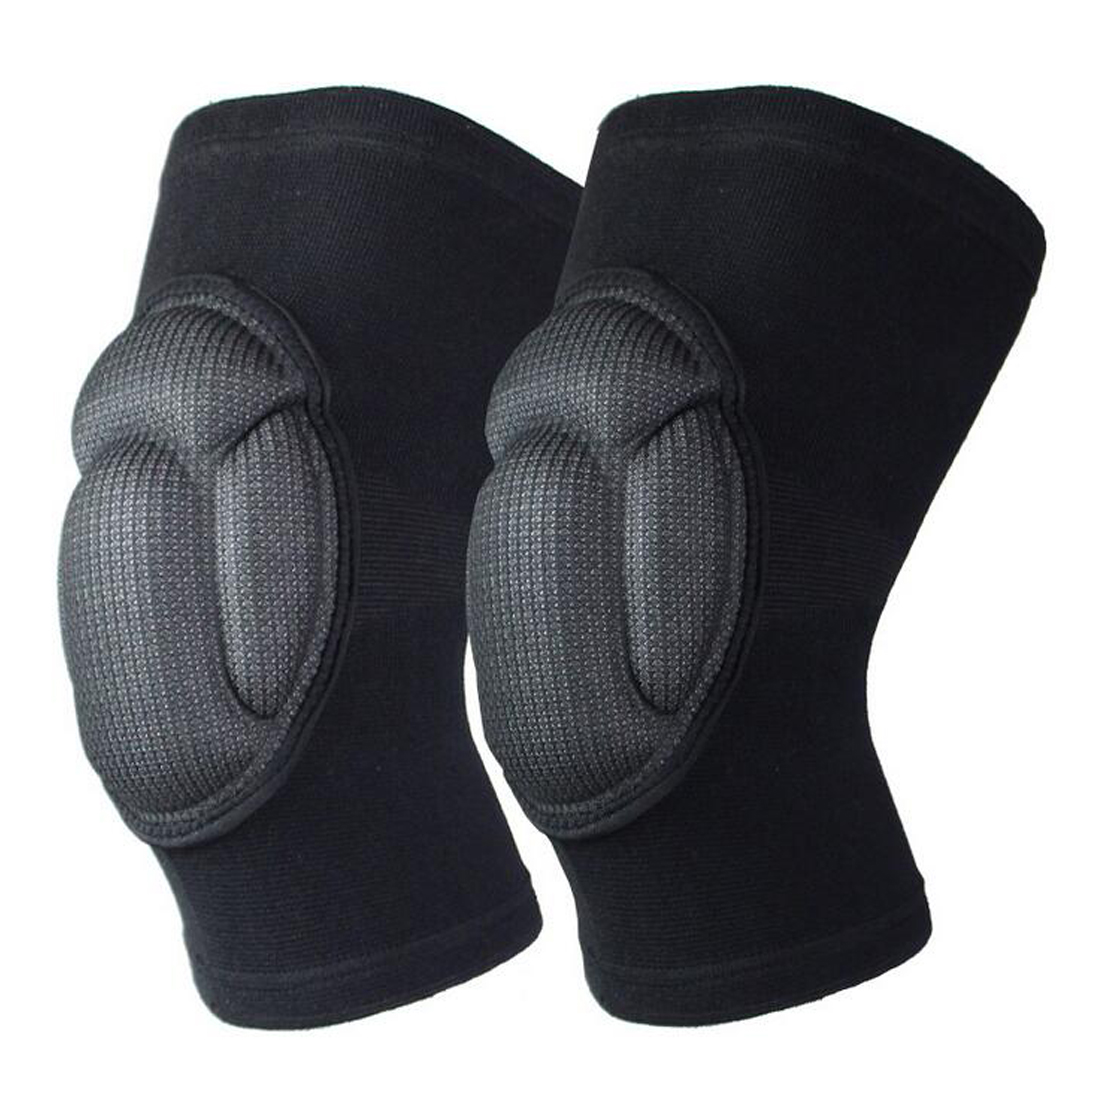 Thickening Knee Pad Football Volleyball Extreme Sports Knee Pad Elbow Brace Support Lap Protect Cycling Knee Protector